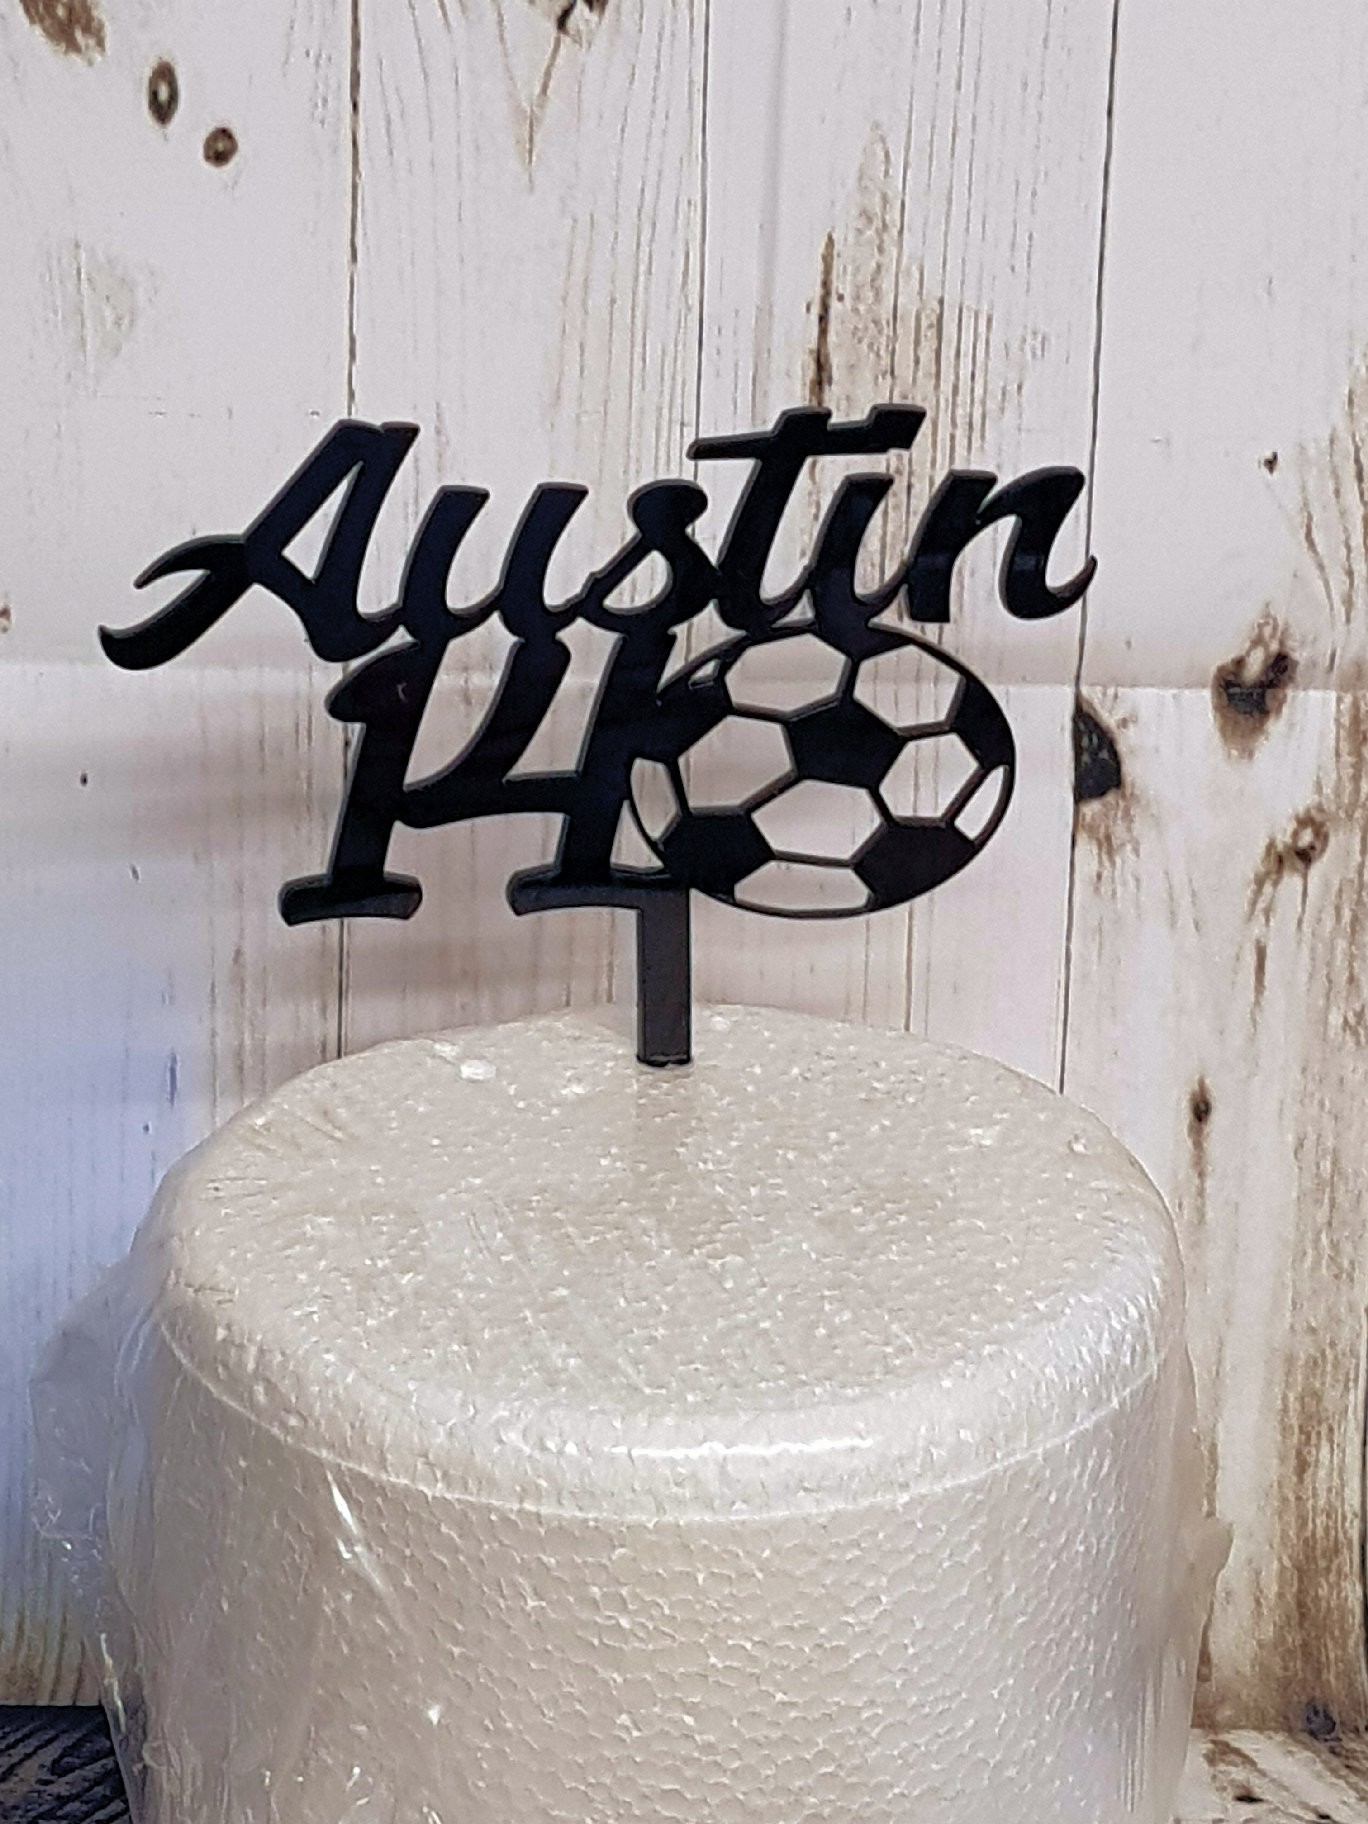 Name & Age with a ball acrylic cake topper